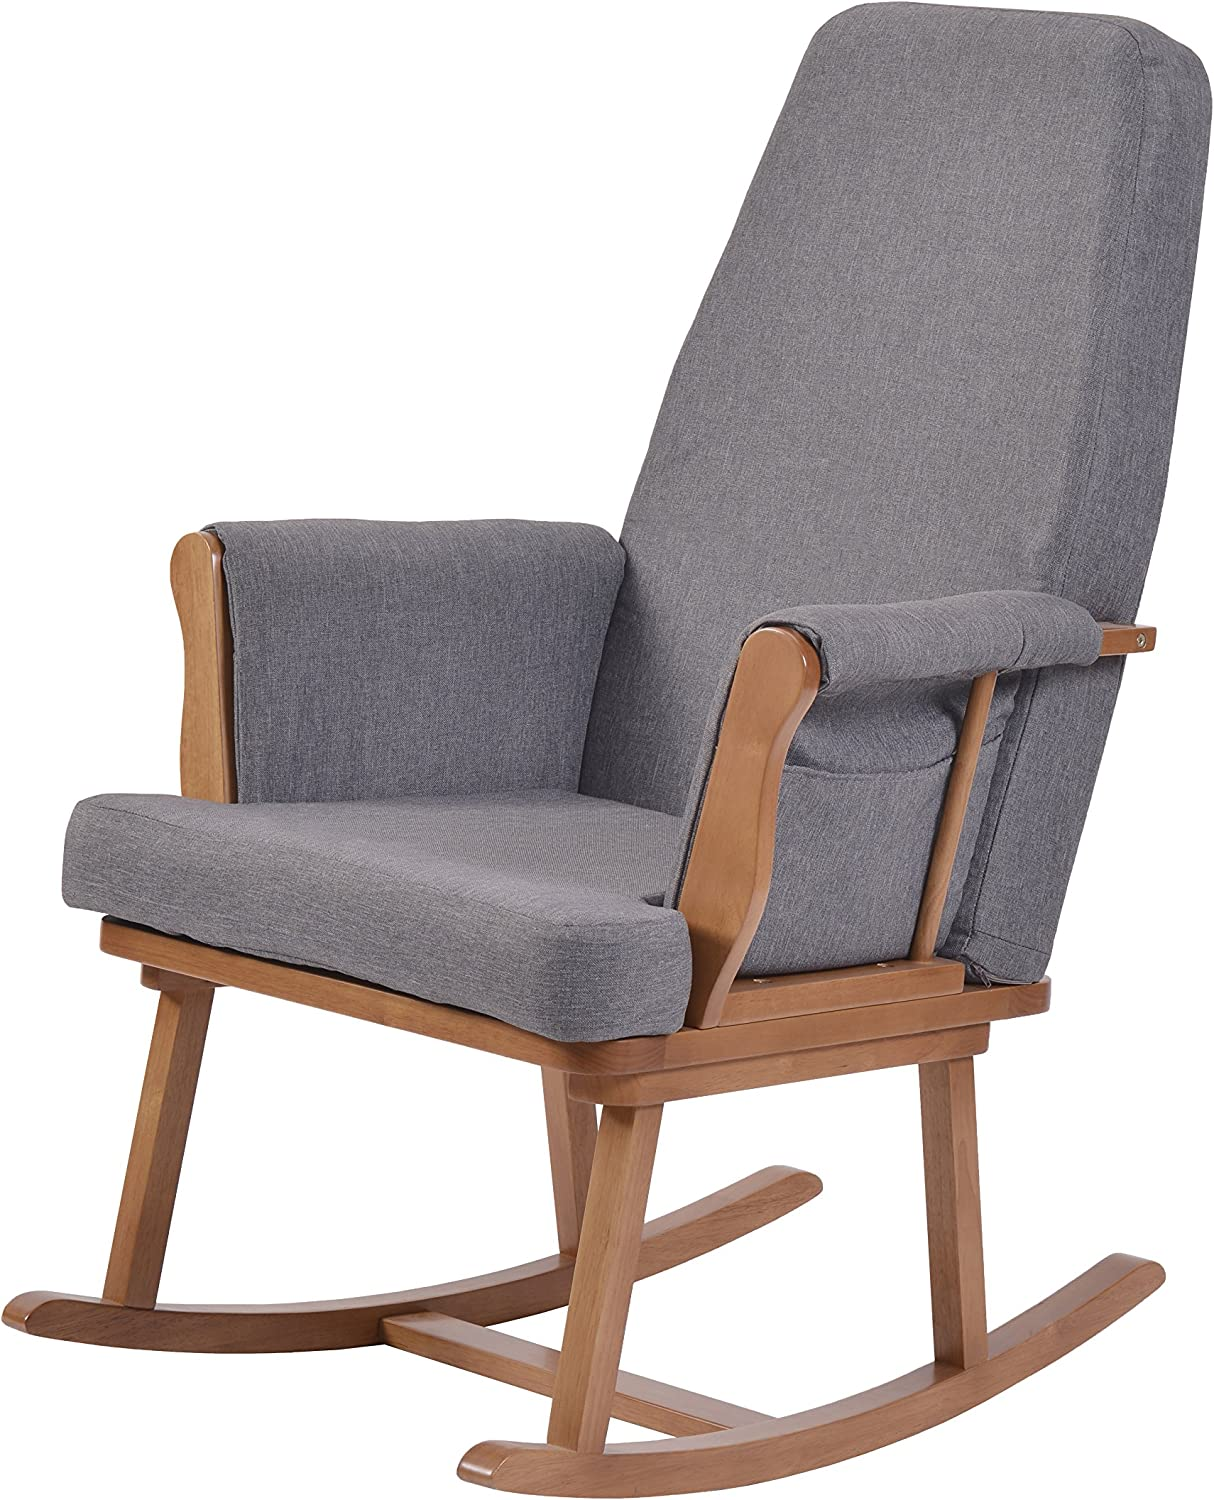 Kub Haldon Nursing Rocking Chair Dark